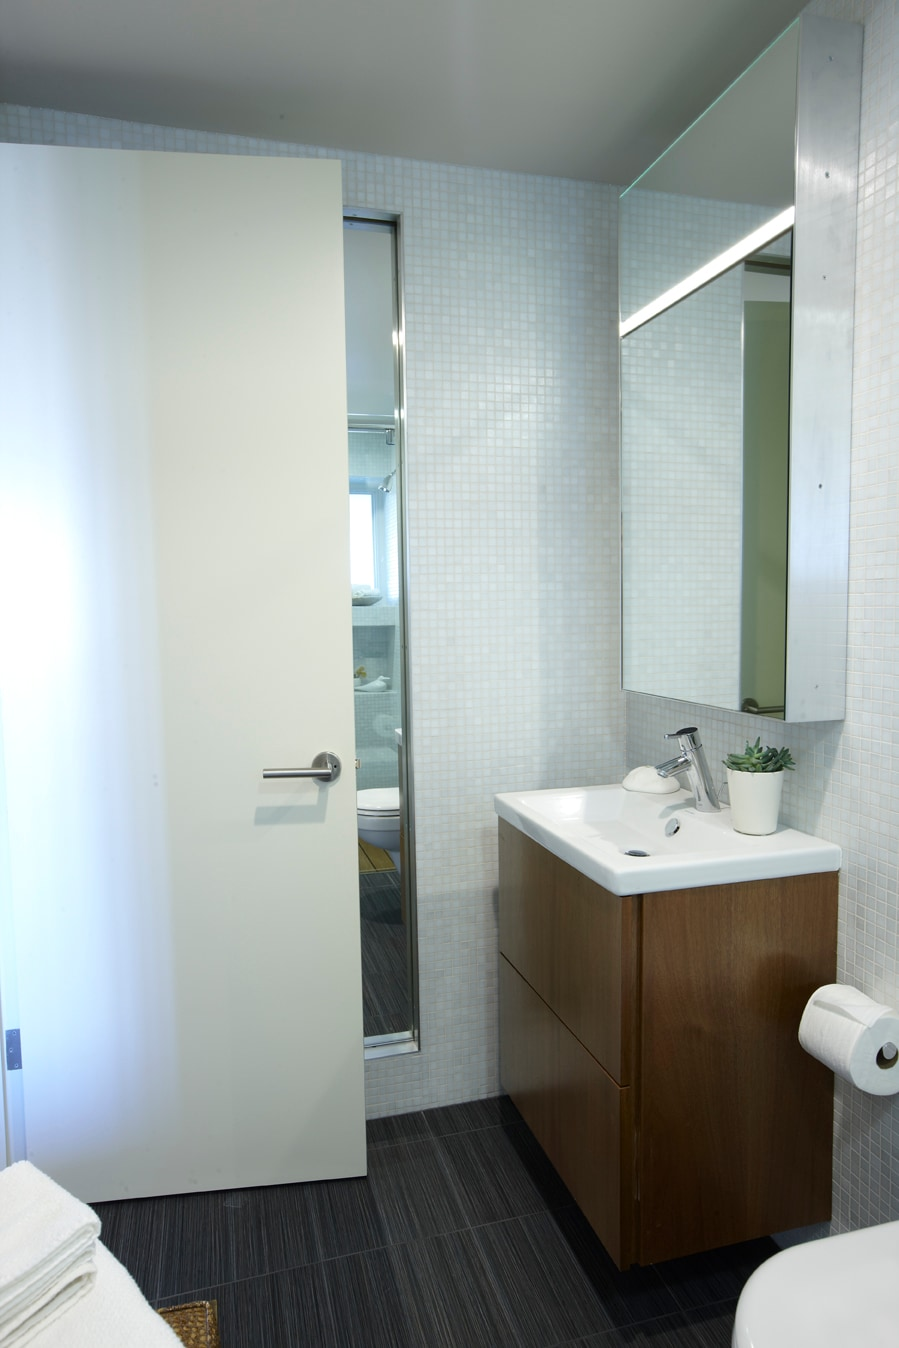 Bathroom. custom teak pull-out drawer vanity and Duravit fixtures; mirror cabinet with side lighting fixture; slide-open shelfing unit with full-length mirror for more storage.